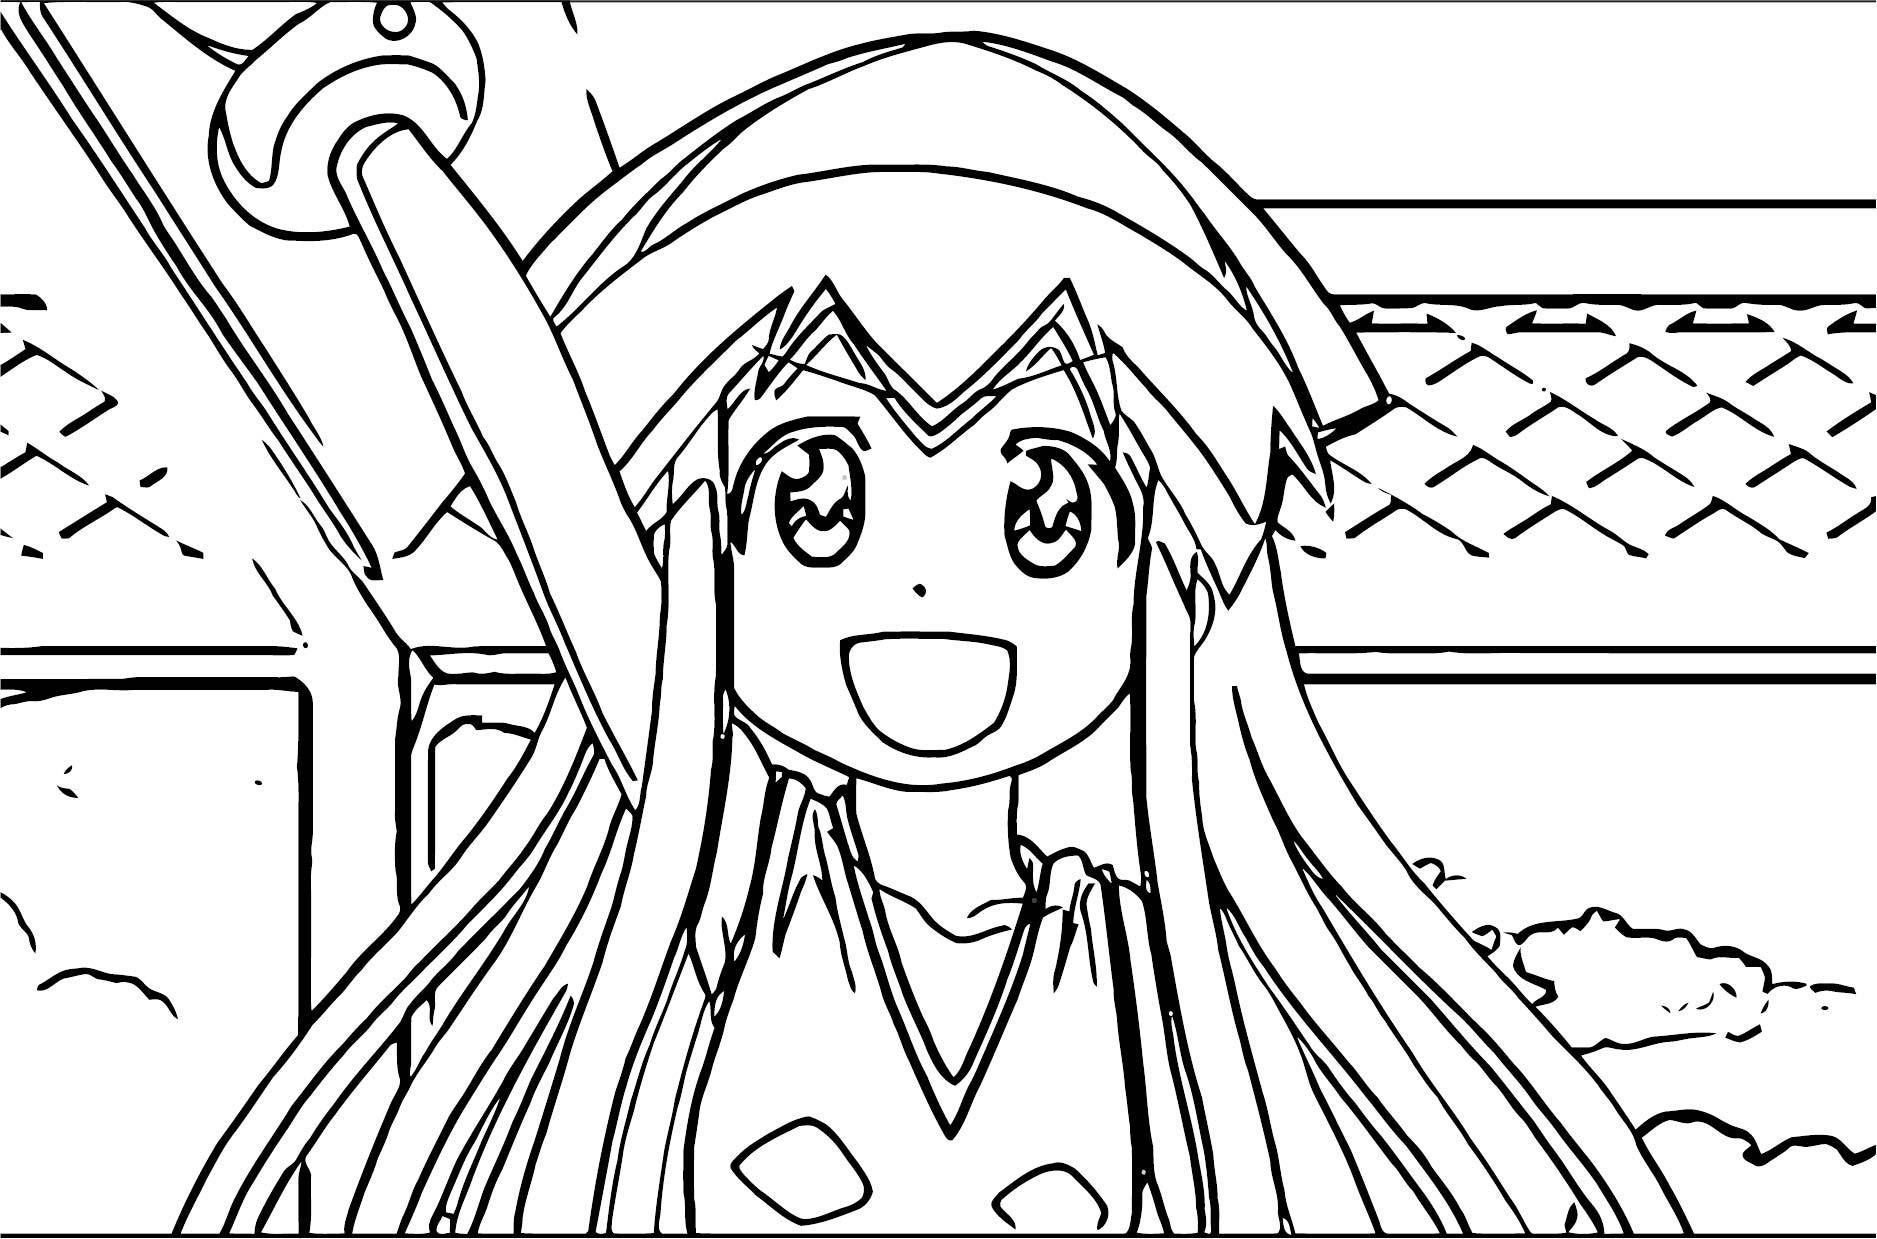 Squid Girl Ika Musume Costume Splatoon Coloring Page